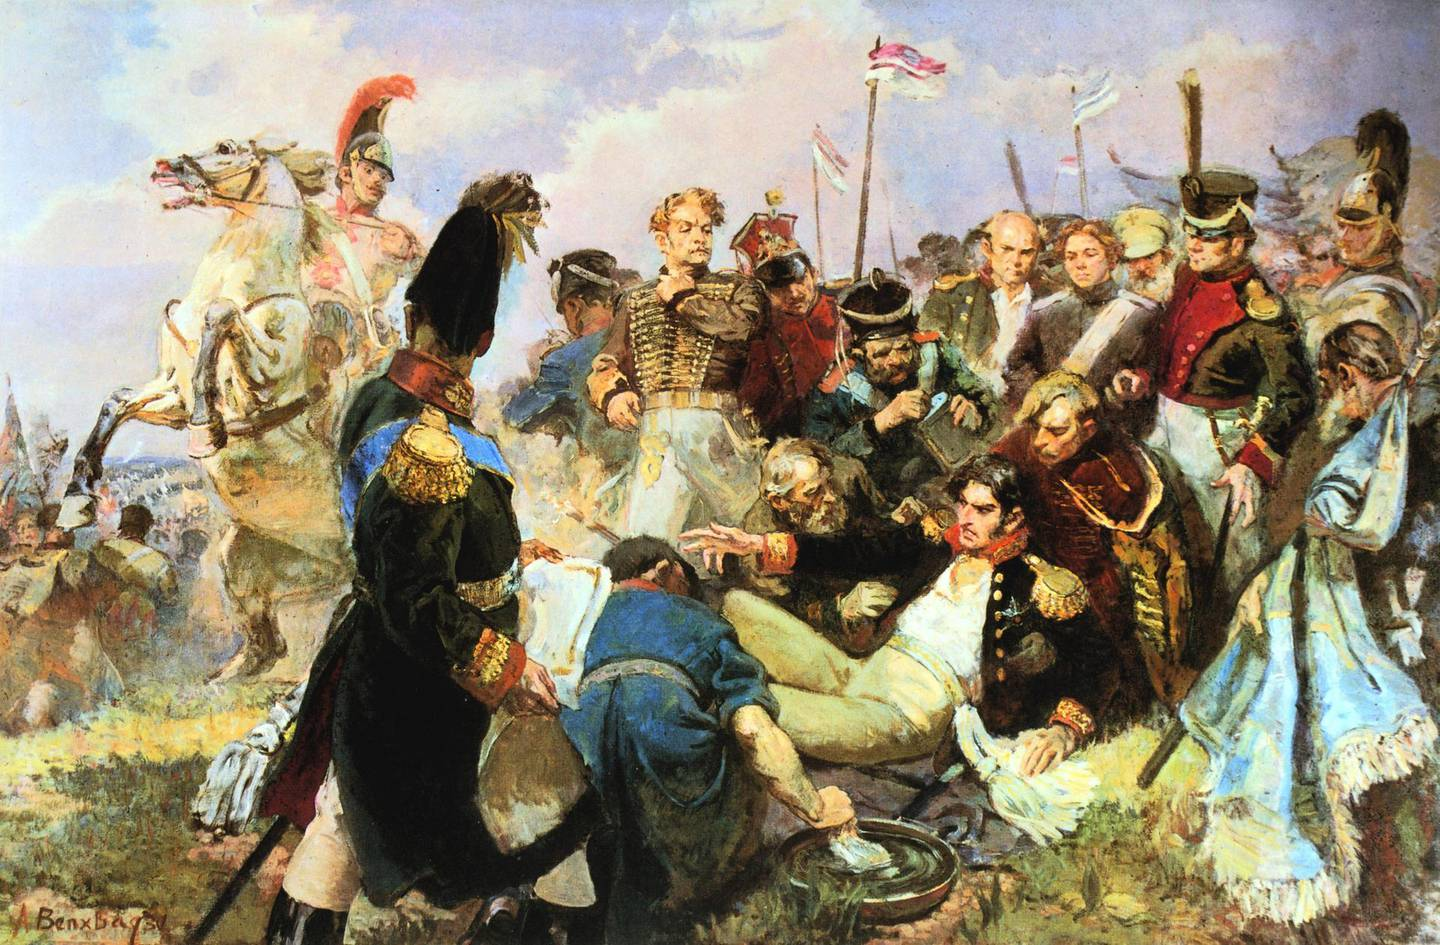 UNSPECIFIED - CIRCA 1754: Battle of Borodino, 7 September 1812, Napoleon's last offensive battle in his Russian campaign and the bloodiest of all the engagements of the Napoleonic Wars. France lost apprxomately 33,000 dead and wounded and Russia 44,000. (Photo by Universal History Archive/Getty Images)